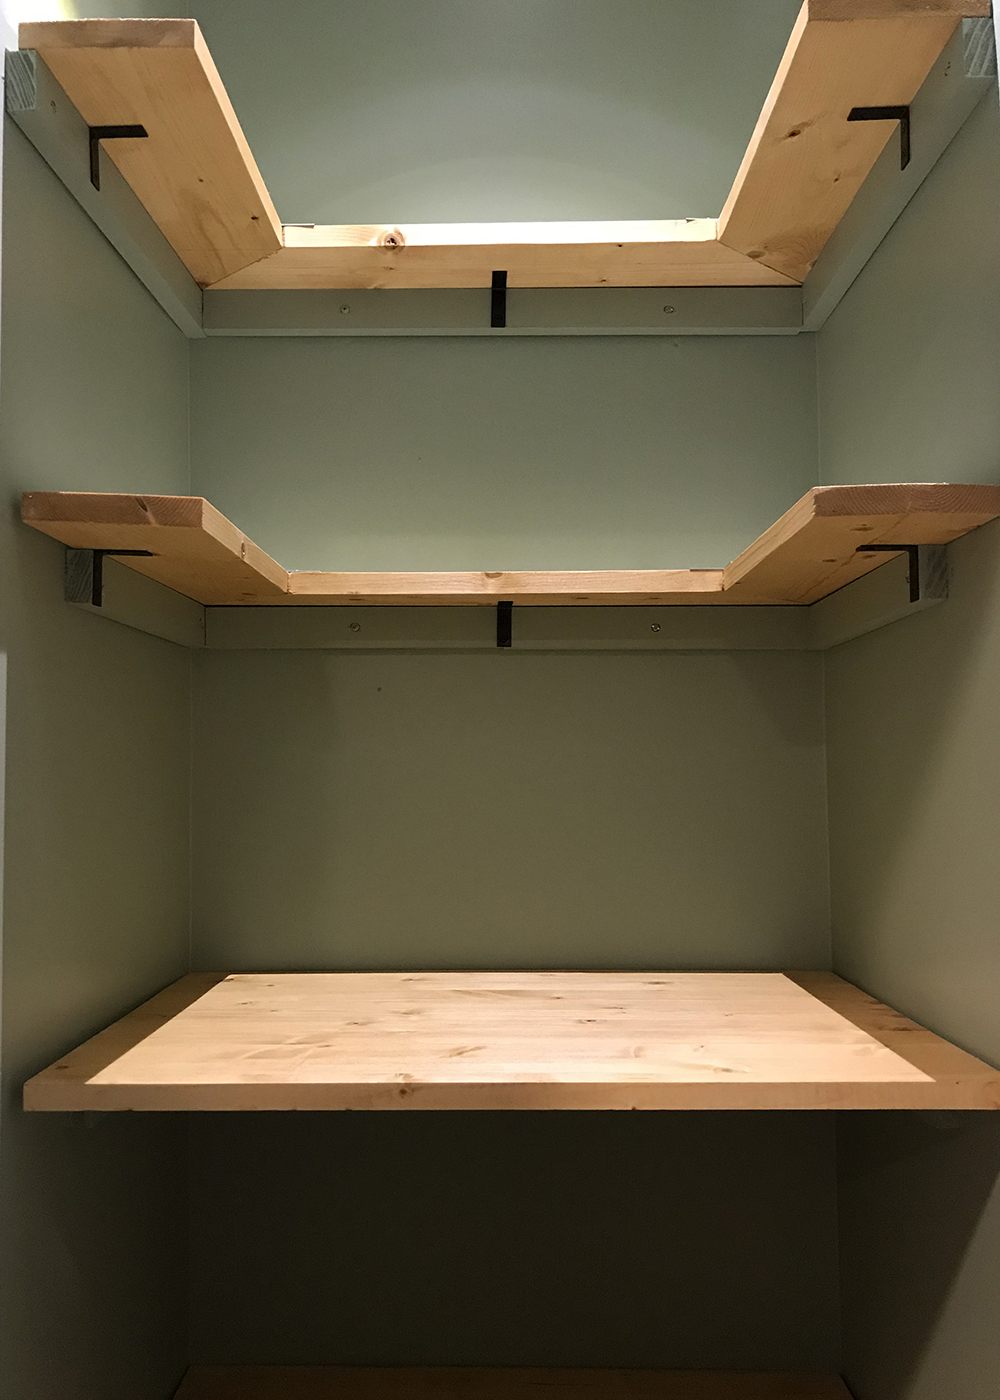 installed new motion sensing light then shelving